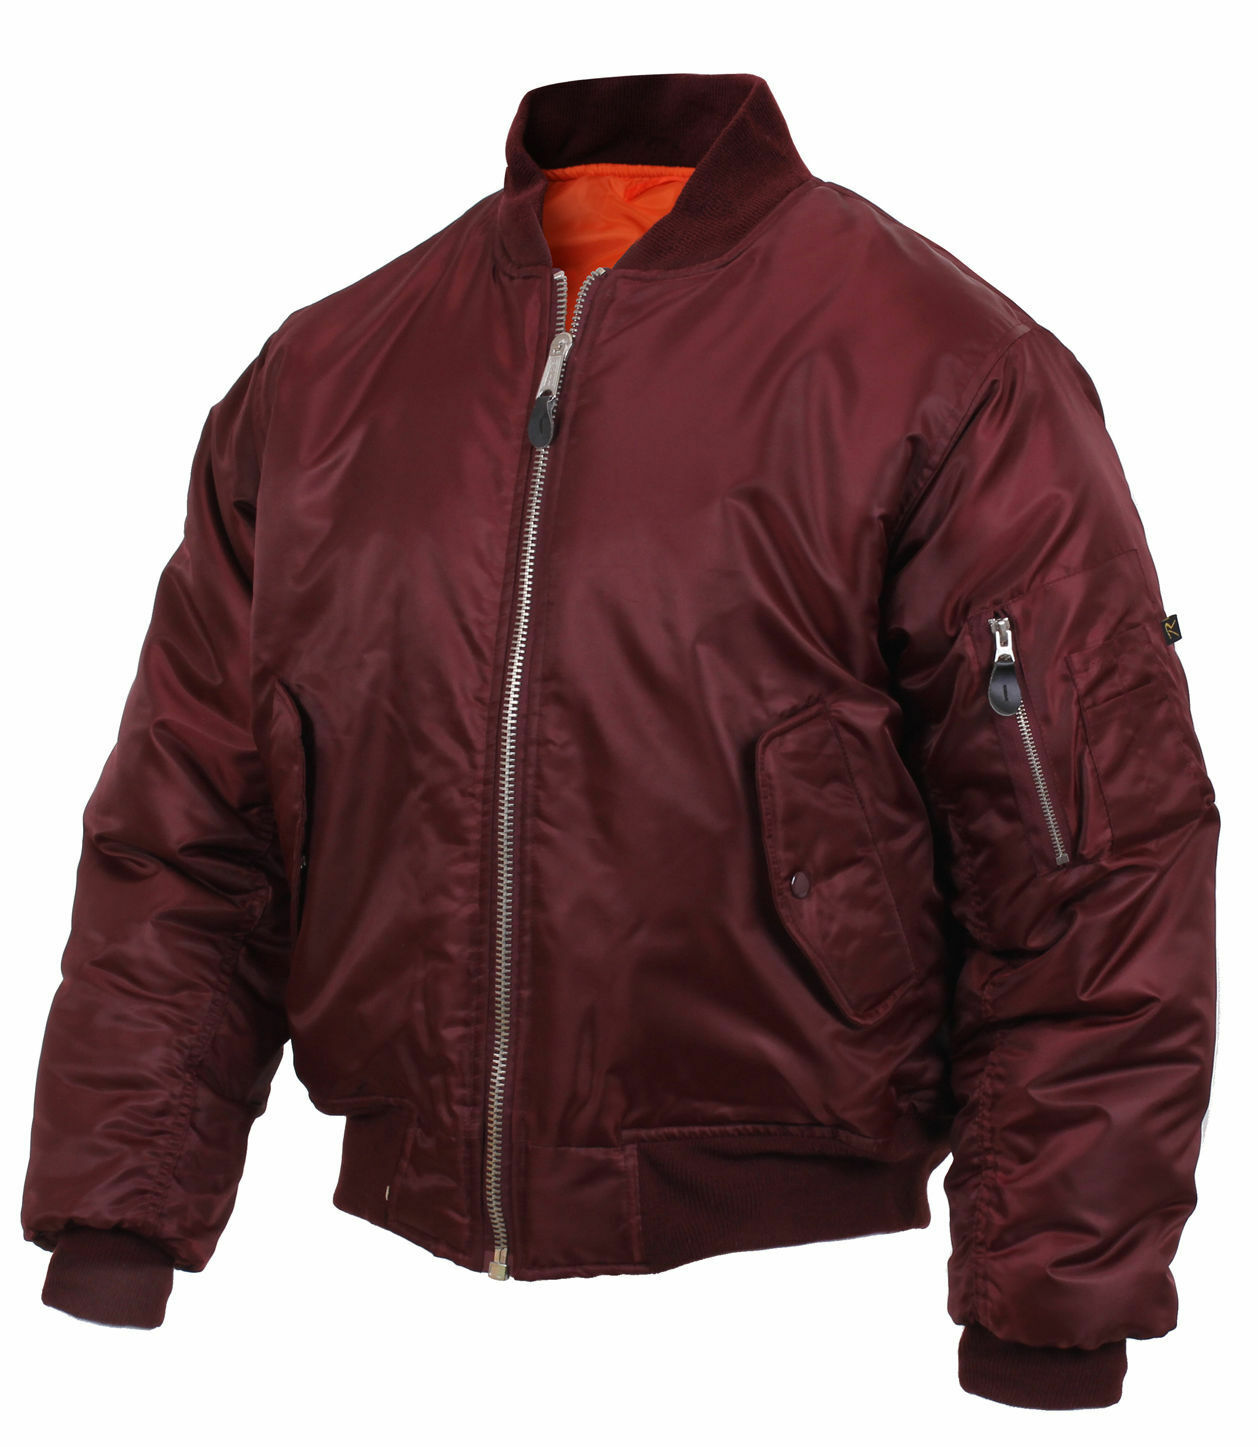 Maroon MENS Military Reversible MA-1 Bomber Jacket Flight Co